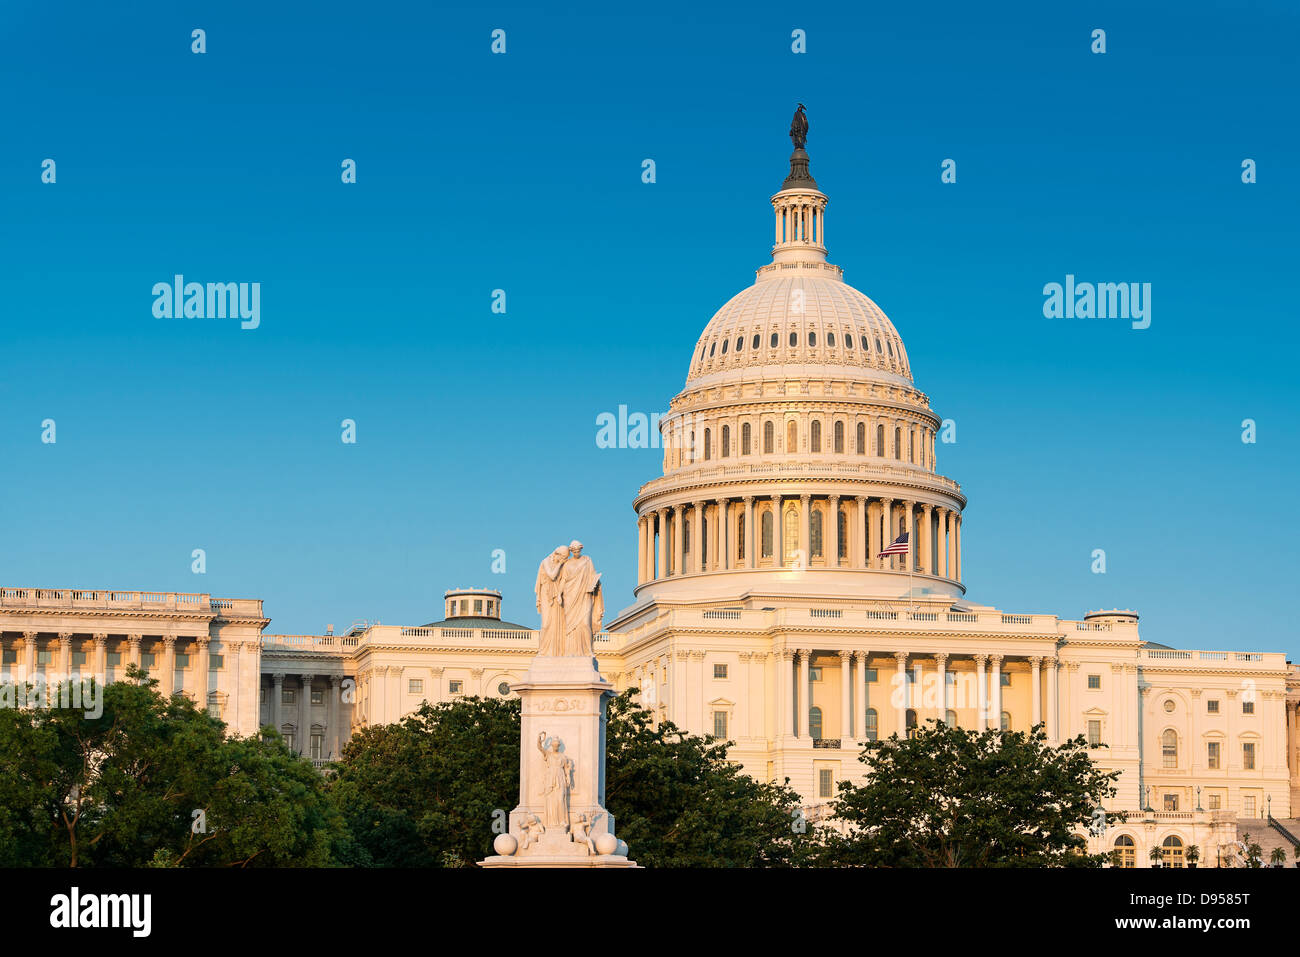 The Peace Monument and U.S. Capitol Building, Washington D.C., USA - Stock Image